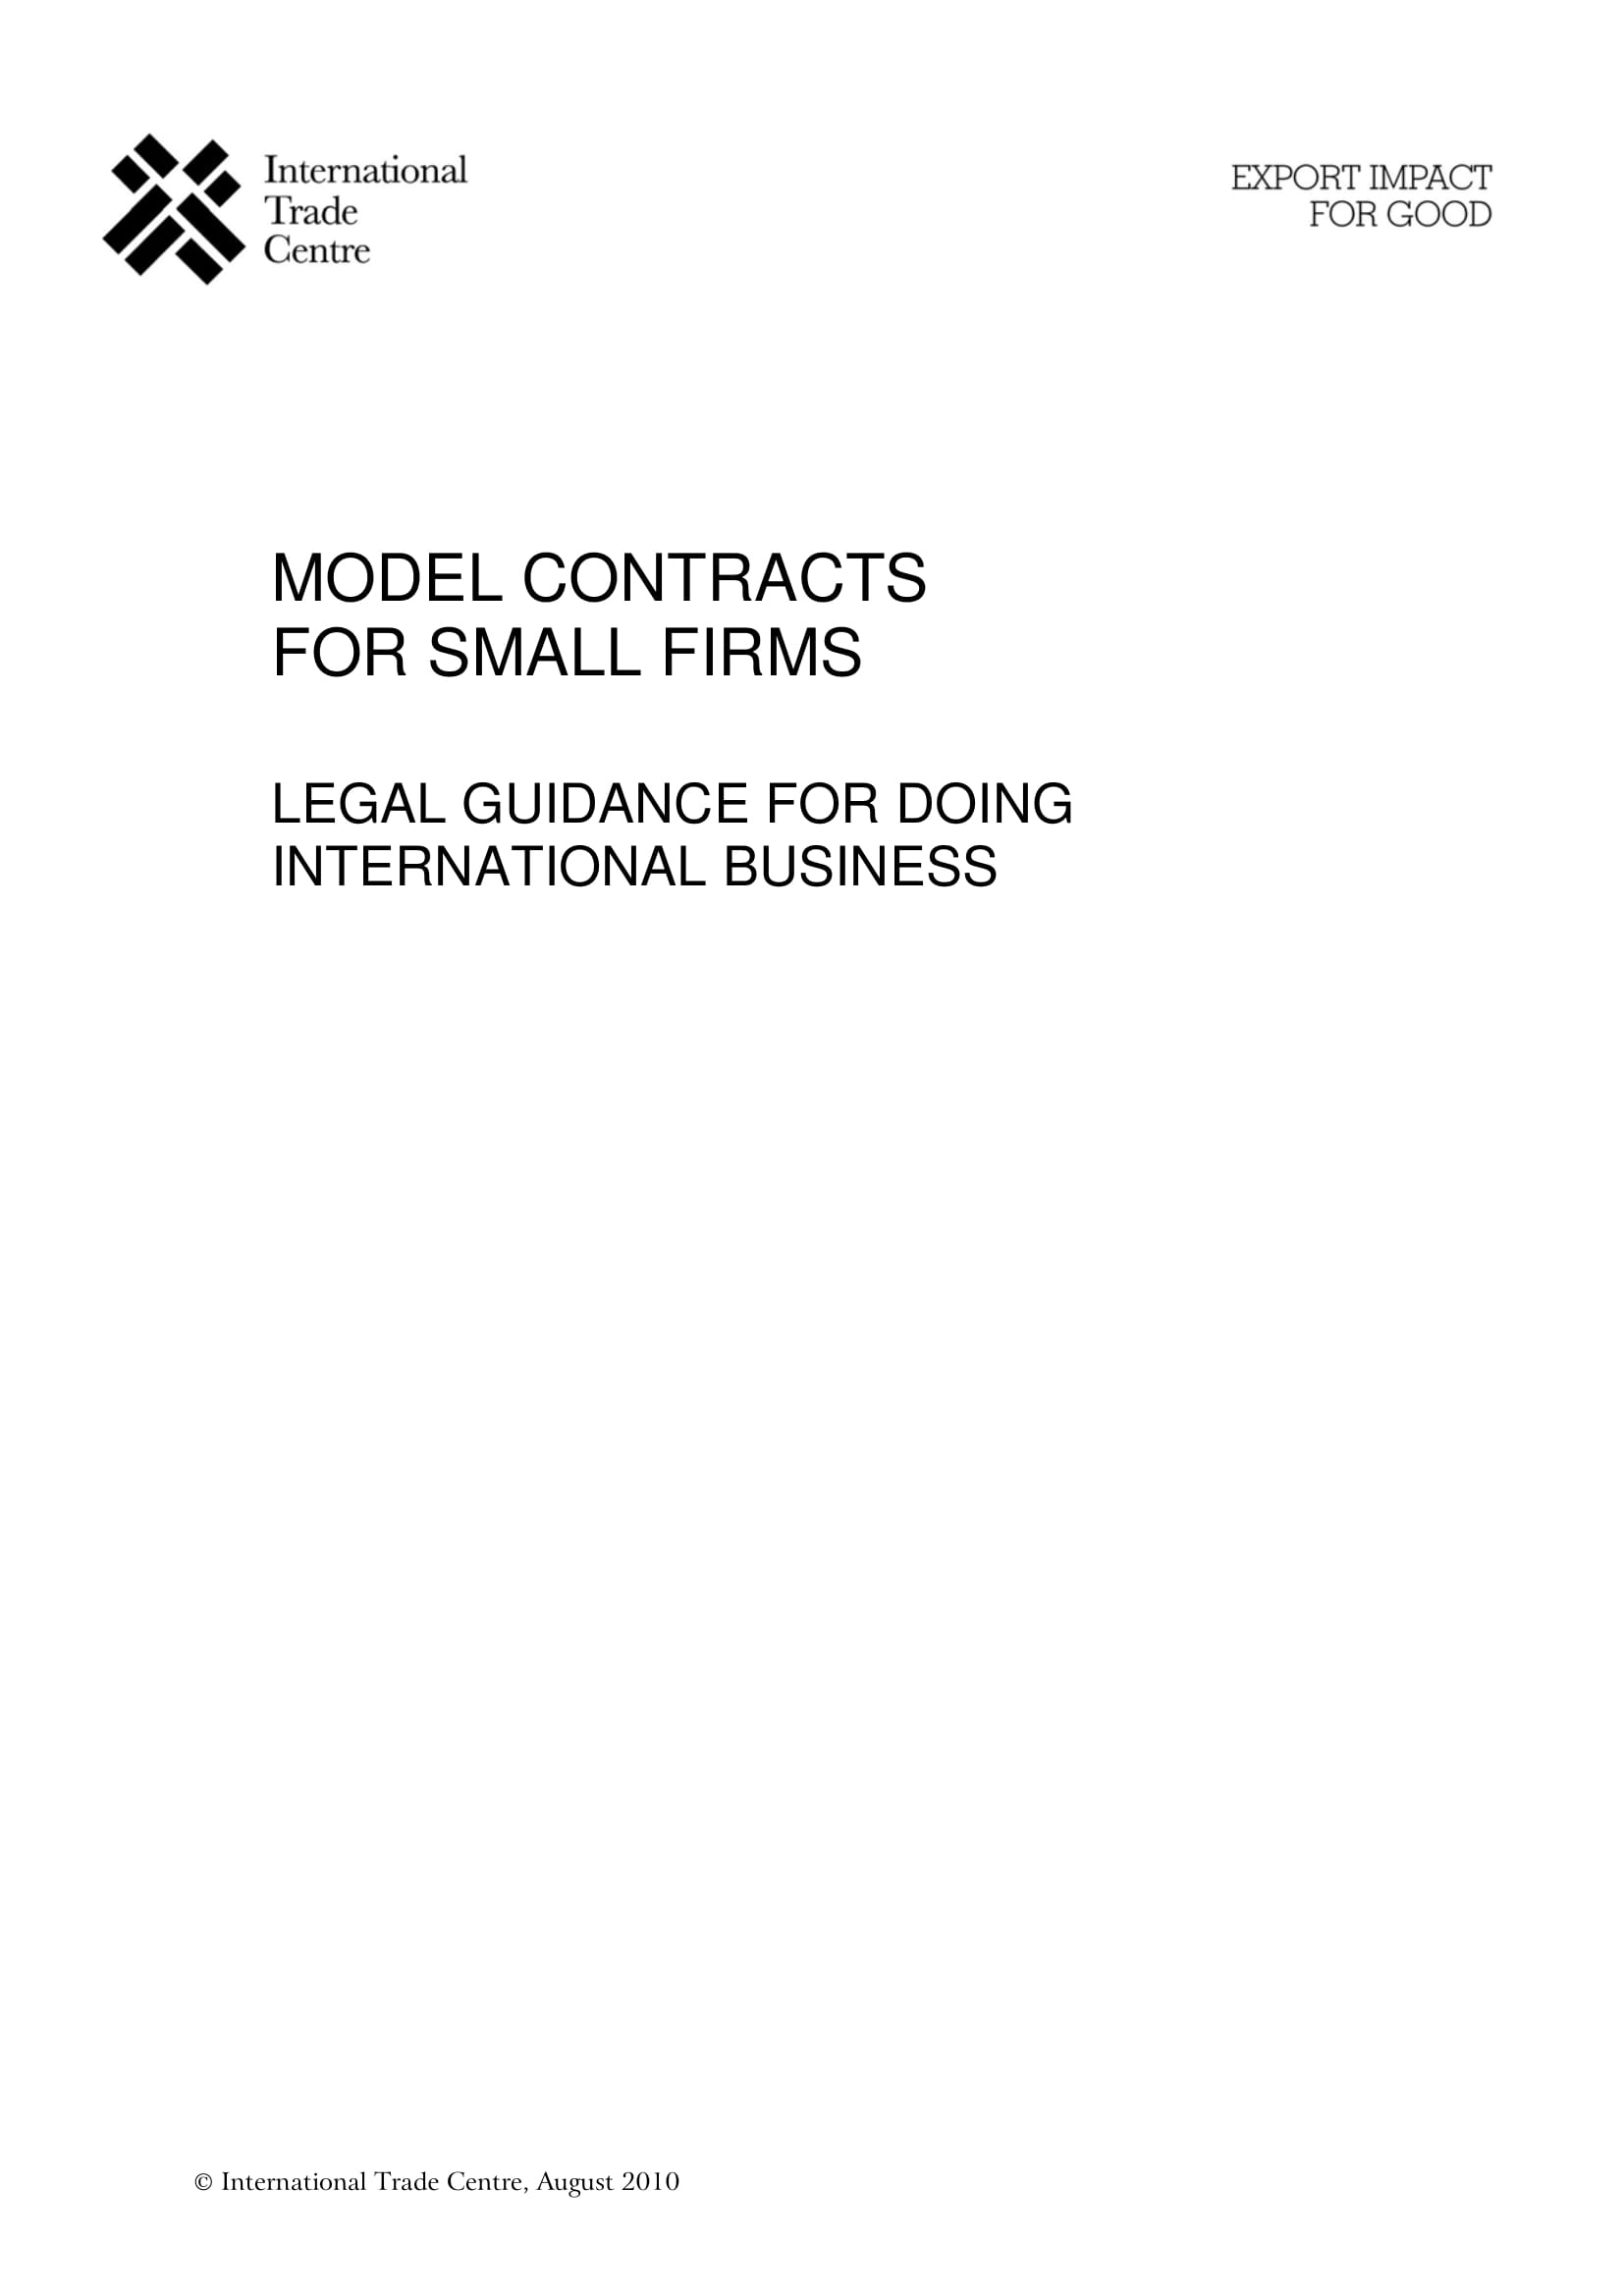 contract manufacturing agreement models for small firms example 01